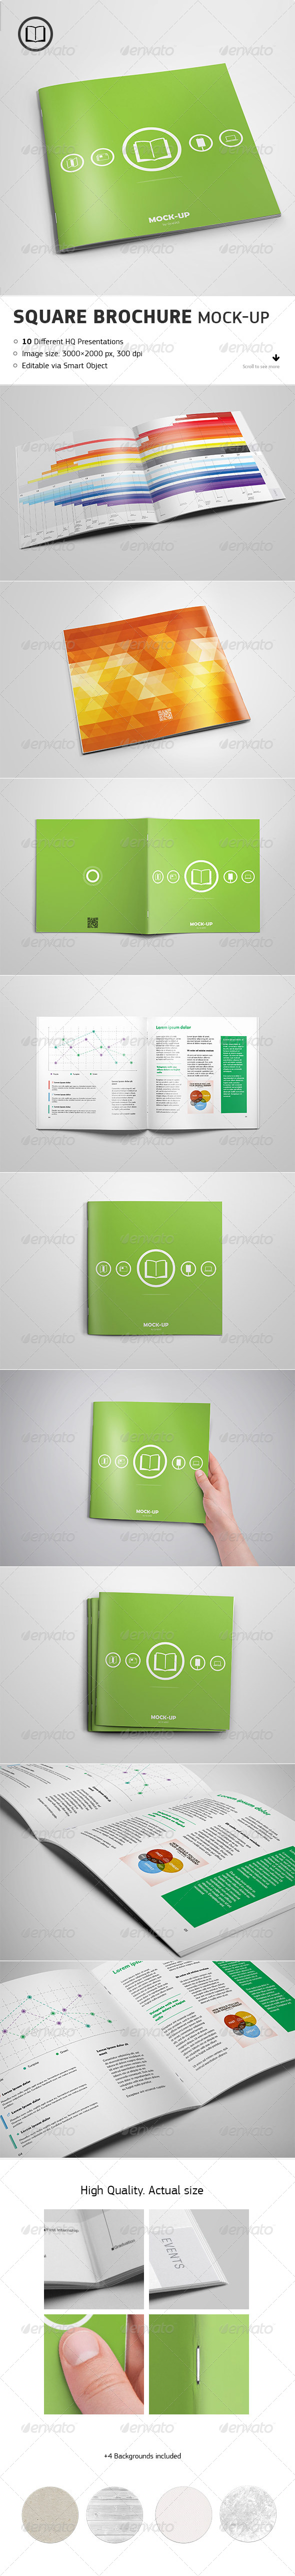 GraphicRiver Square Brochure Mock-up 7893868